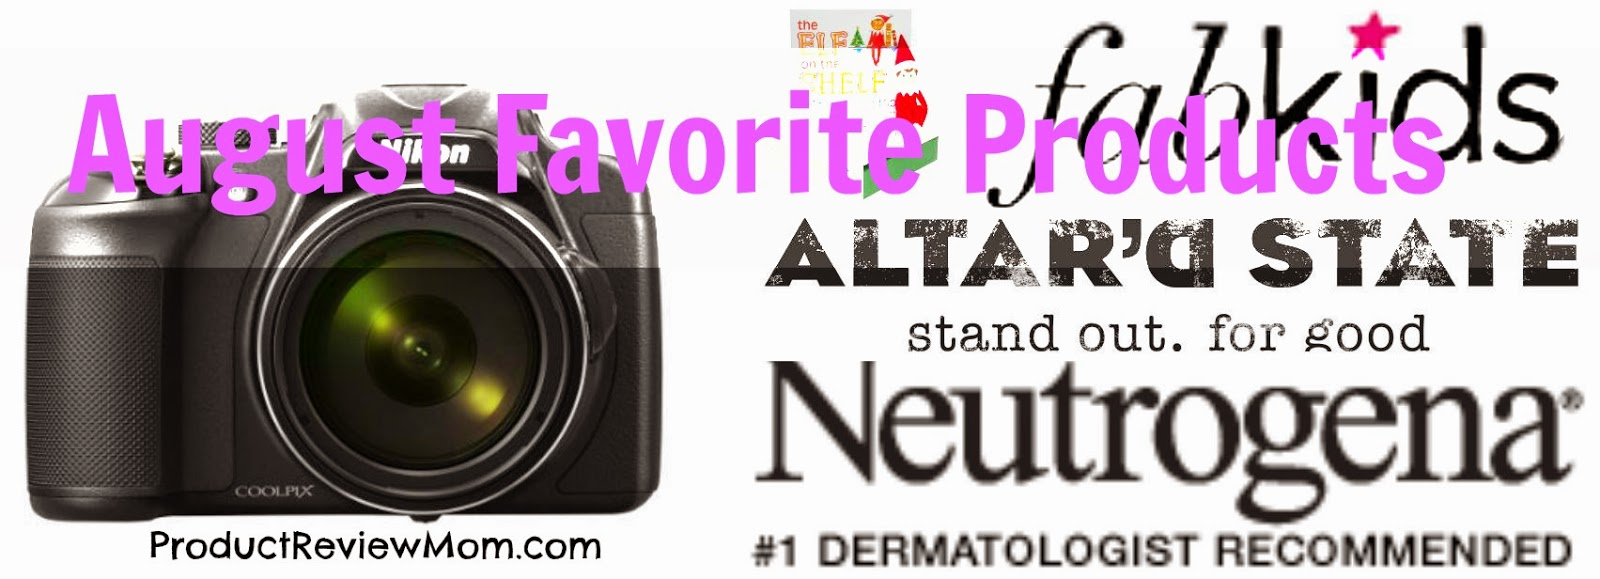 August Favorite Products 2014 #MustHaves via www.Productreviewmom.com